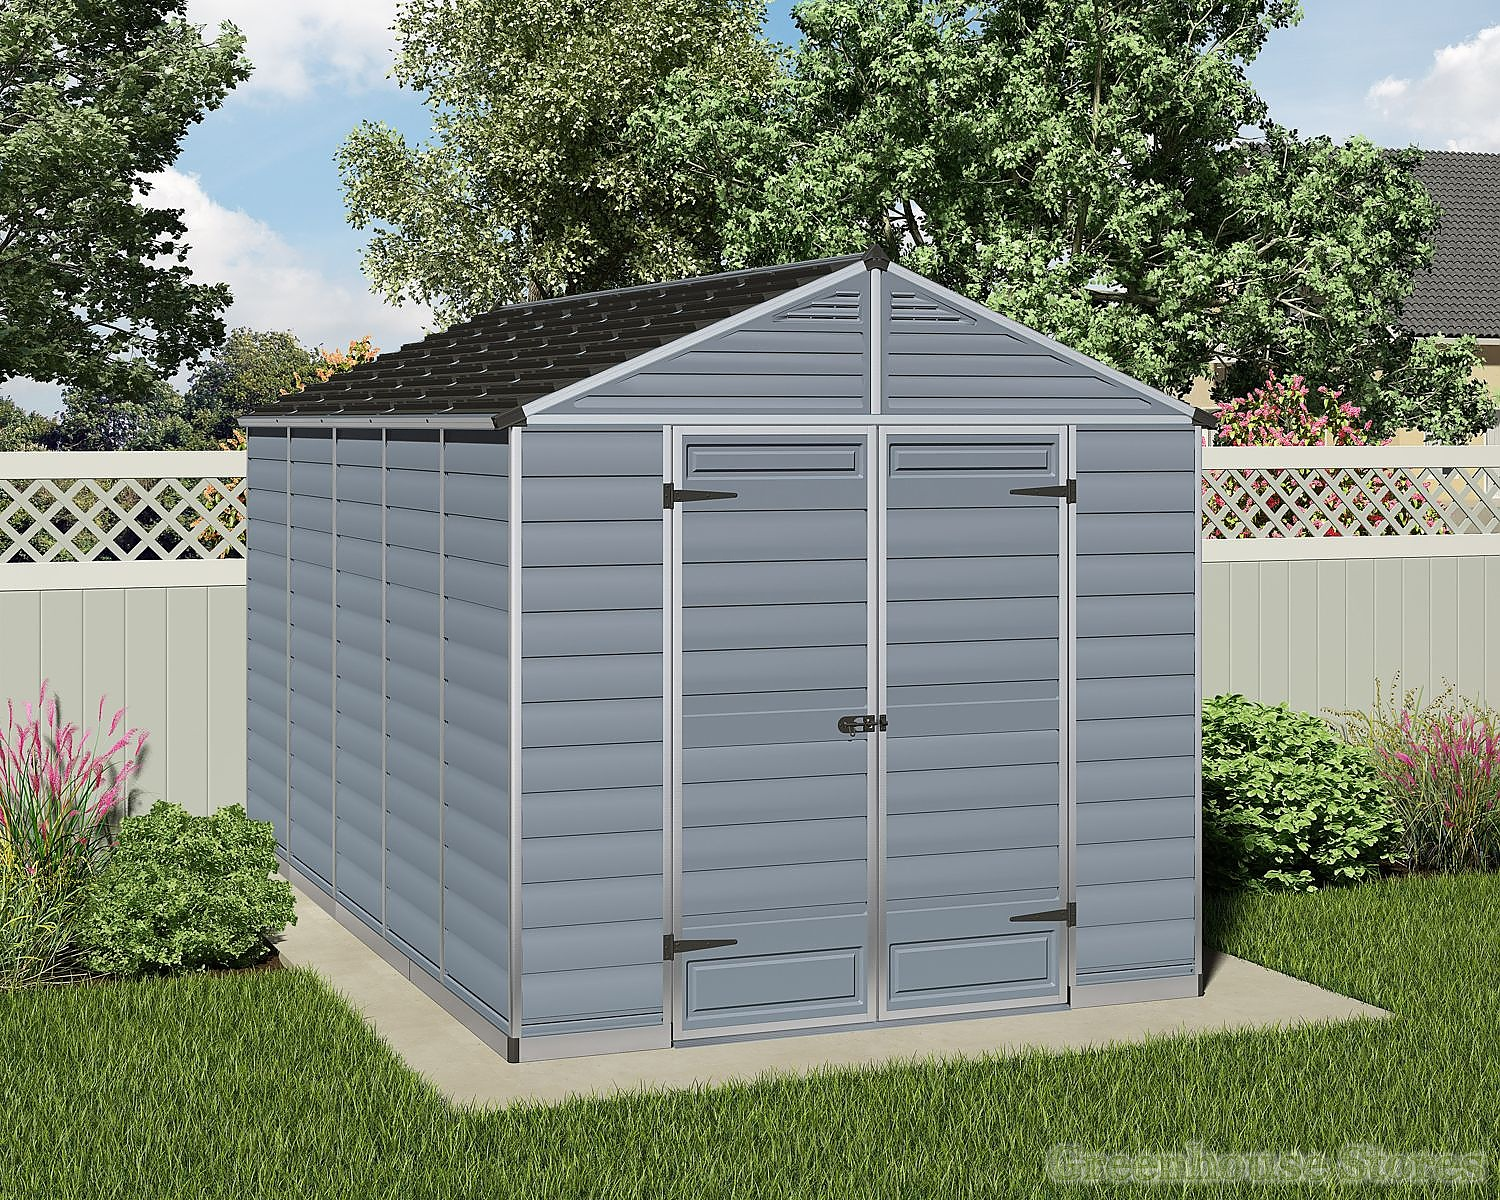 Palram 8x12 plastic skylight grey shed greenhouse stores - Garden sheds m x m ...